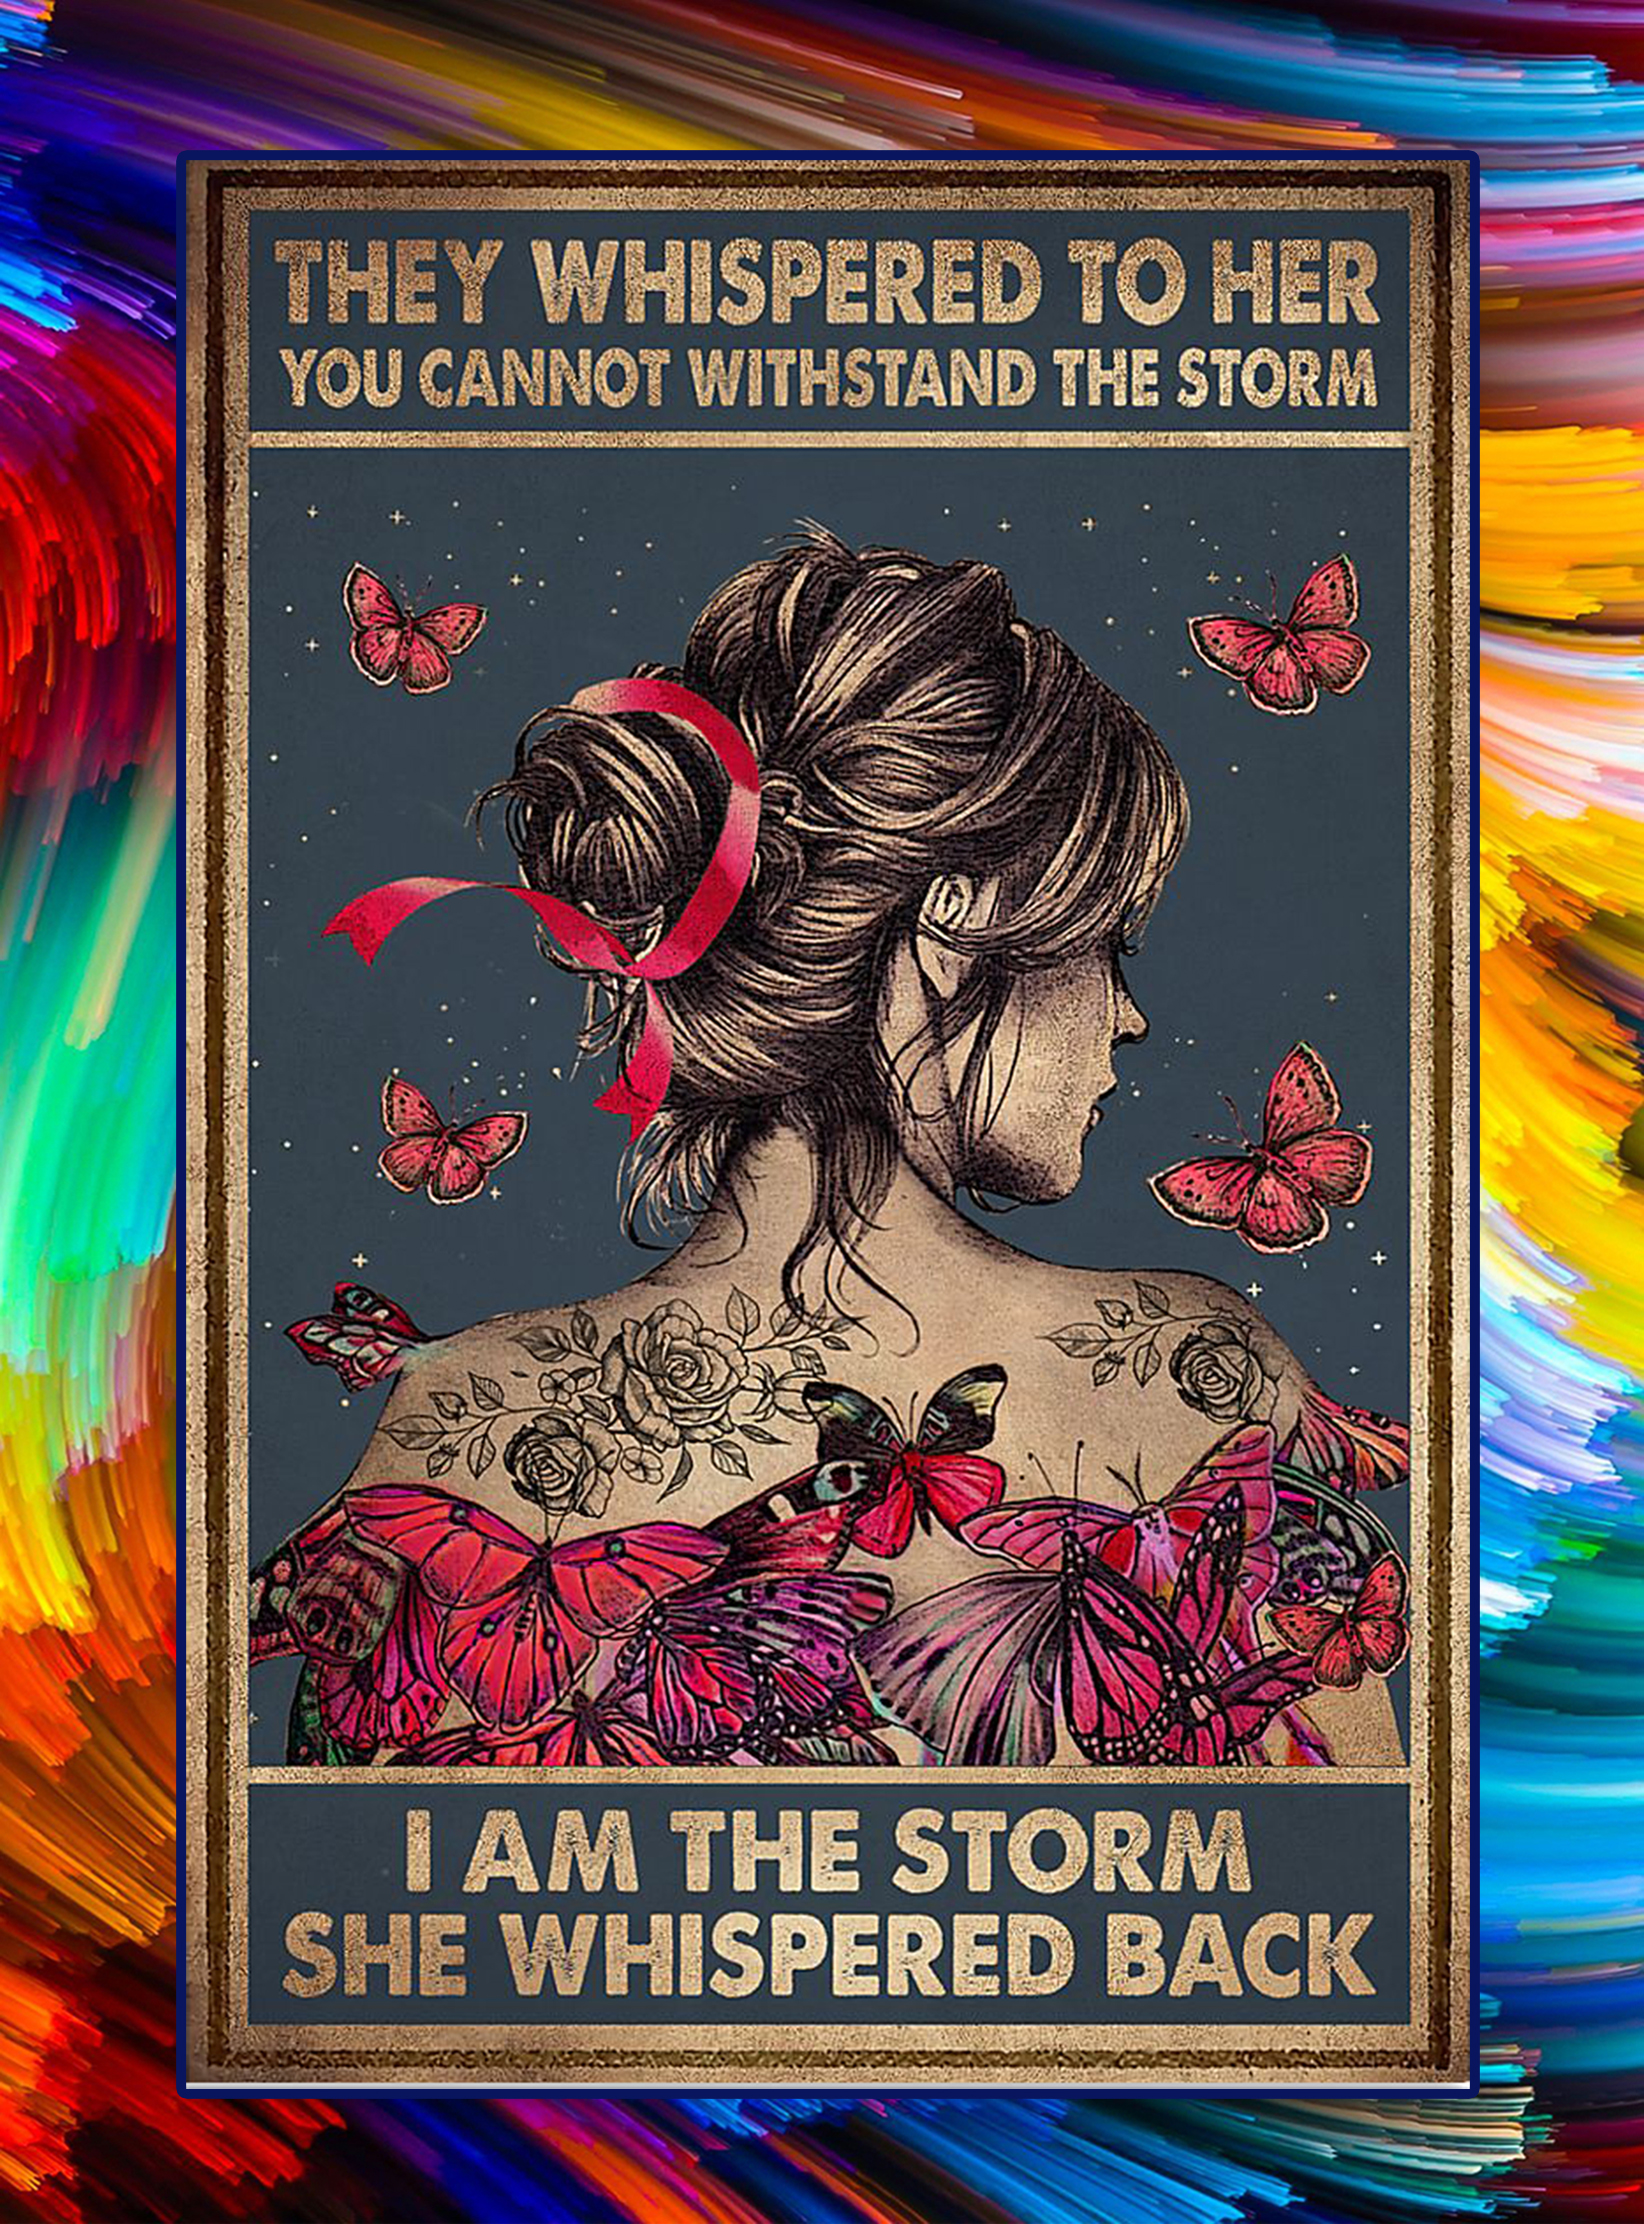 Breast cancer butterfly i am the storm poster - A2